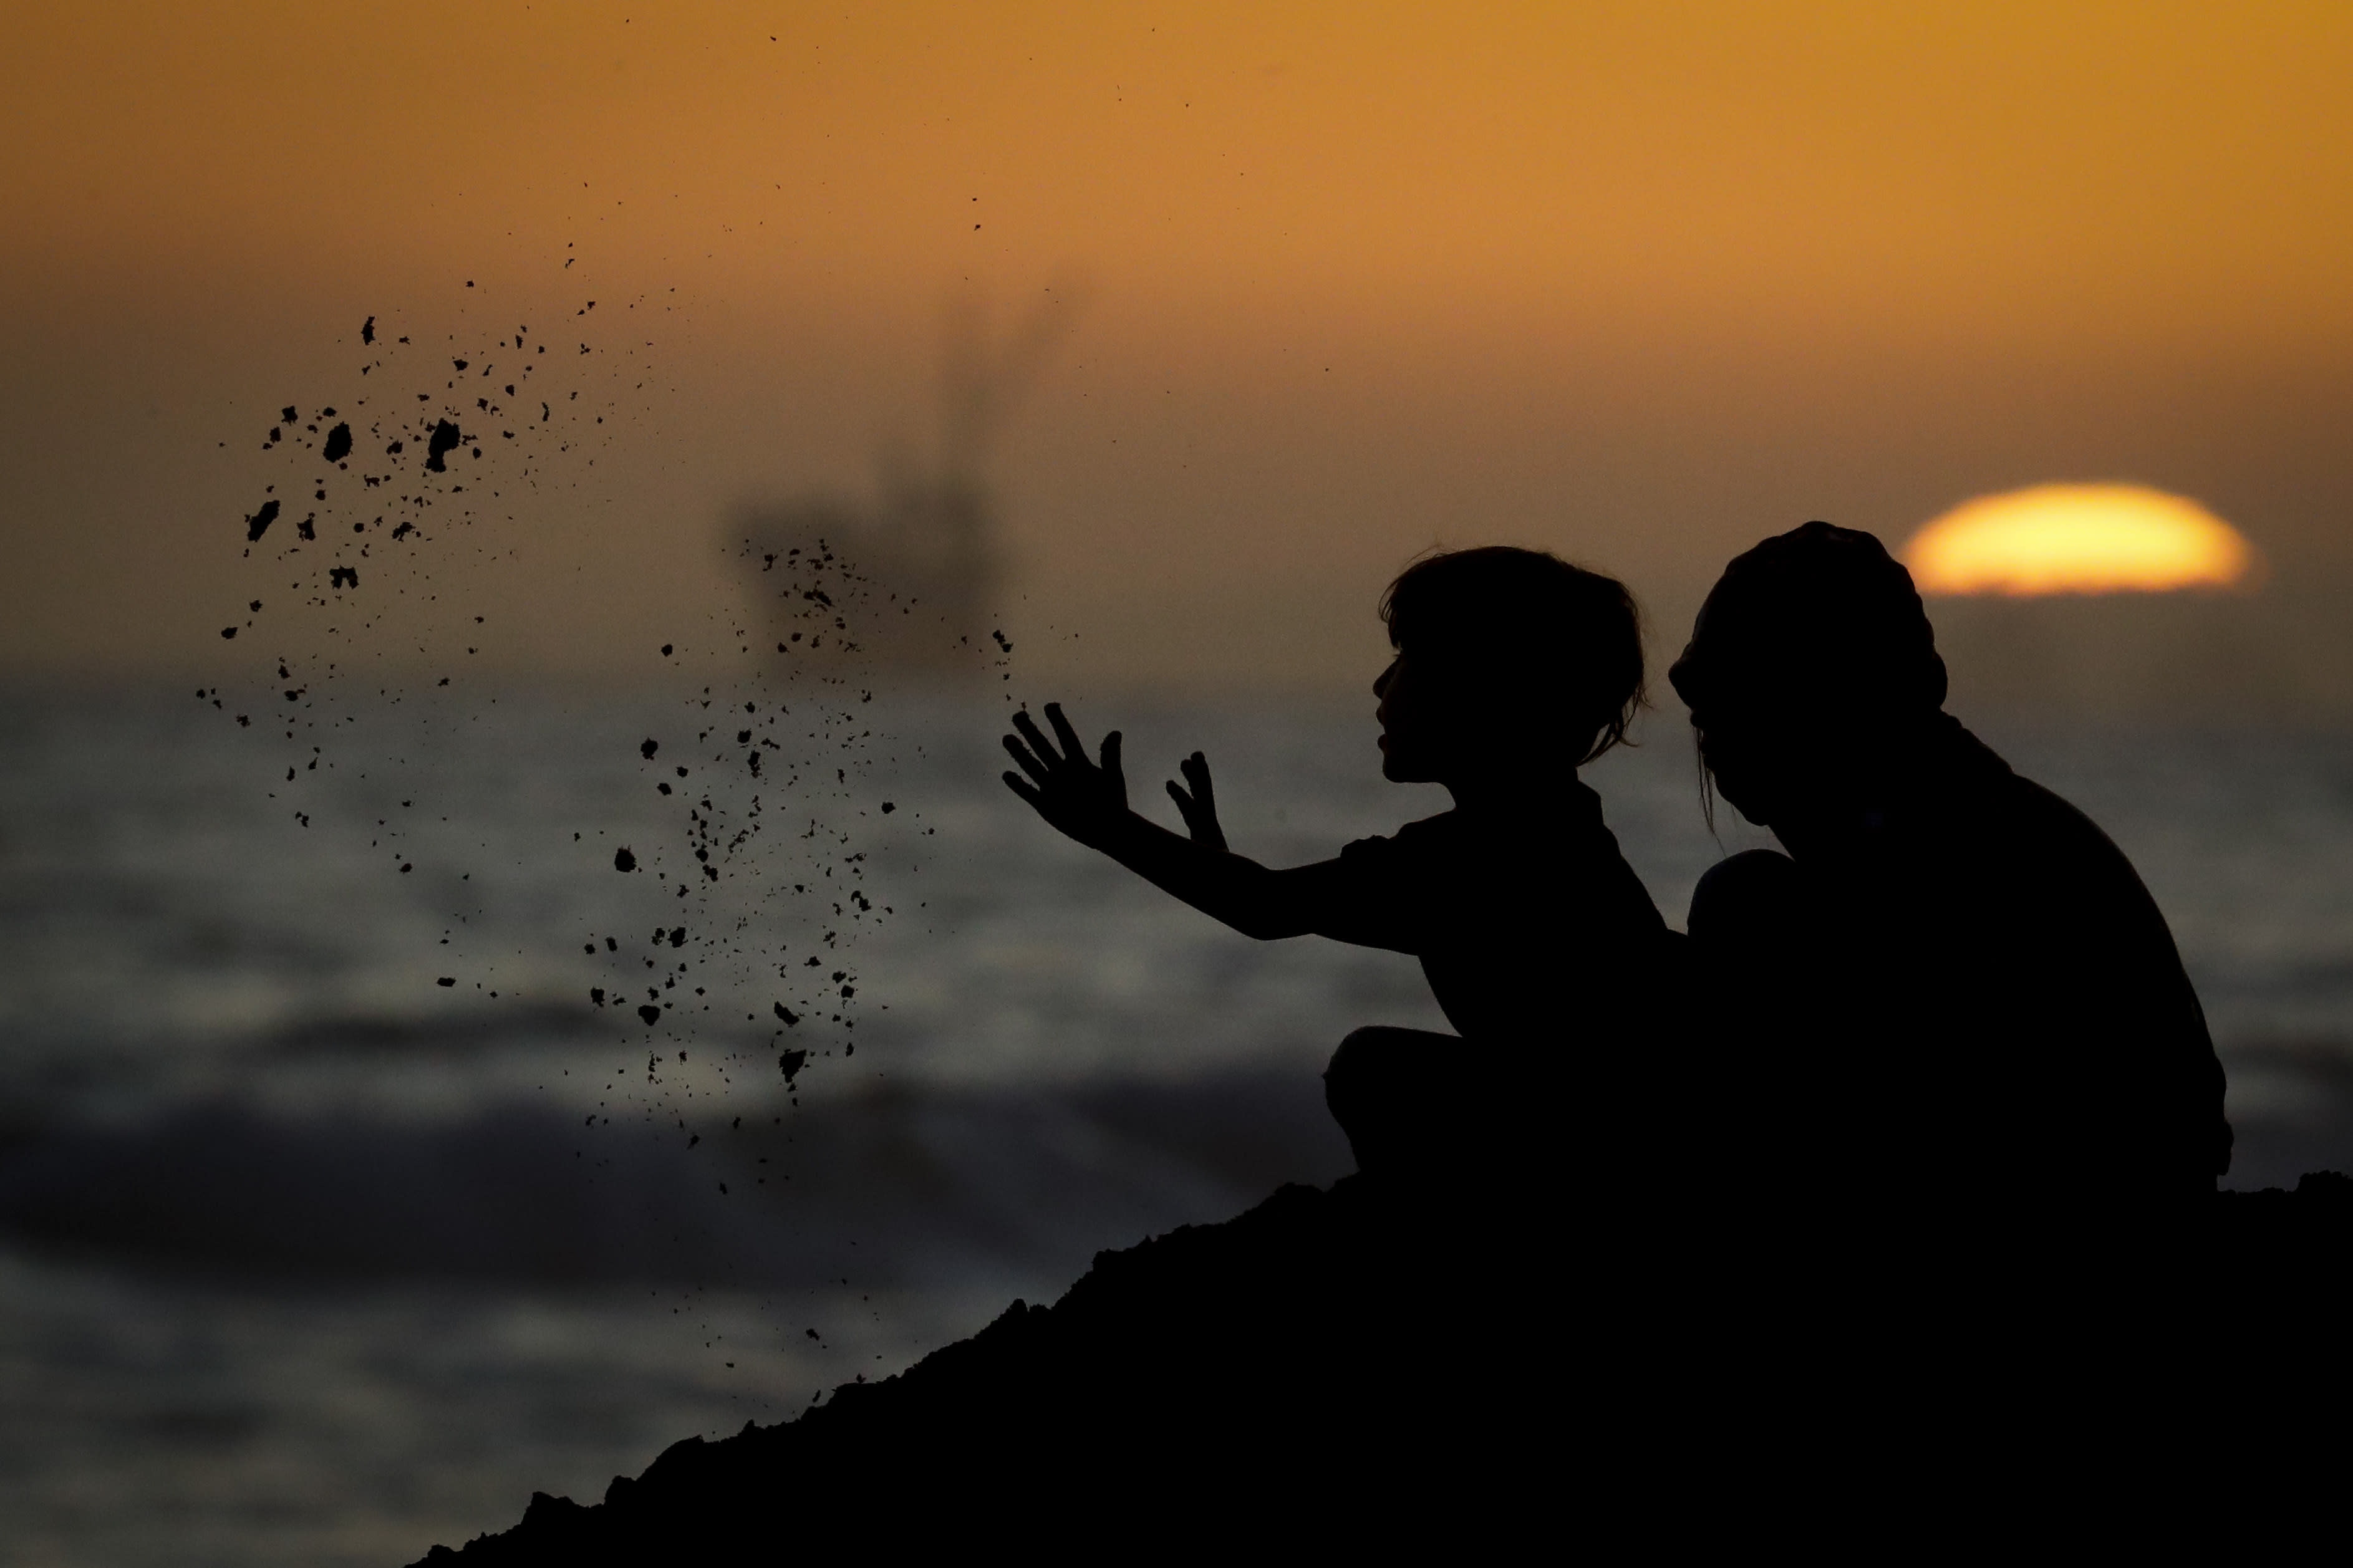 Youngsters play in the sand Tuesday, April 21, 2020, in Huntington Beach, Calif. Warm temperatures are predicted for Southern California by the end of the week. (AP Photo/Chris Carlson)